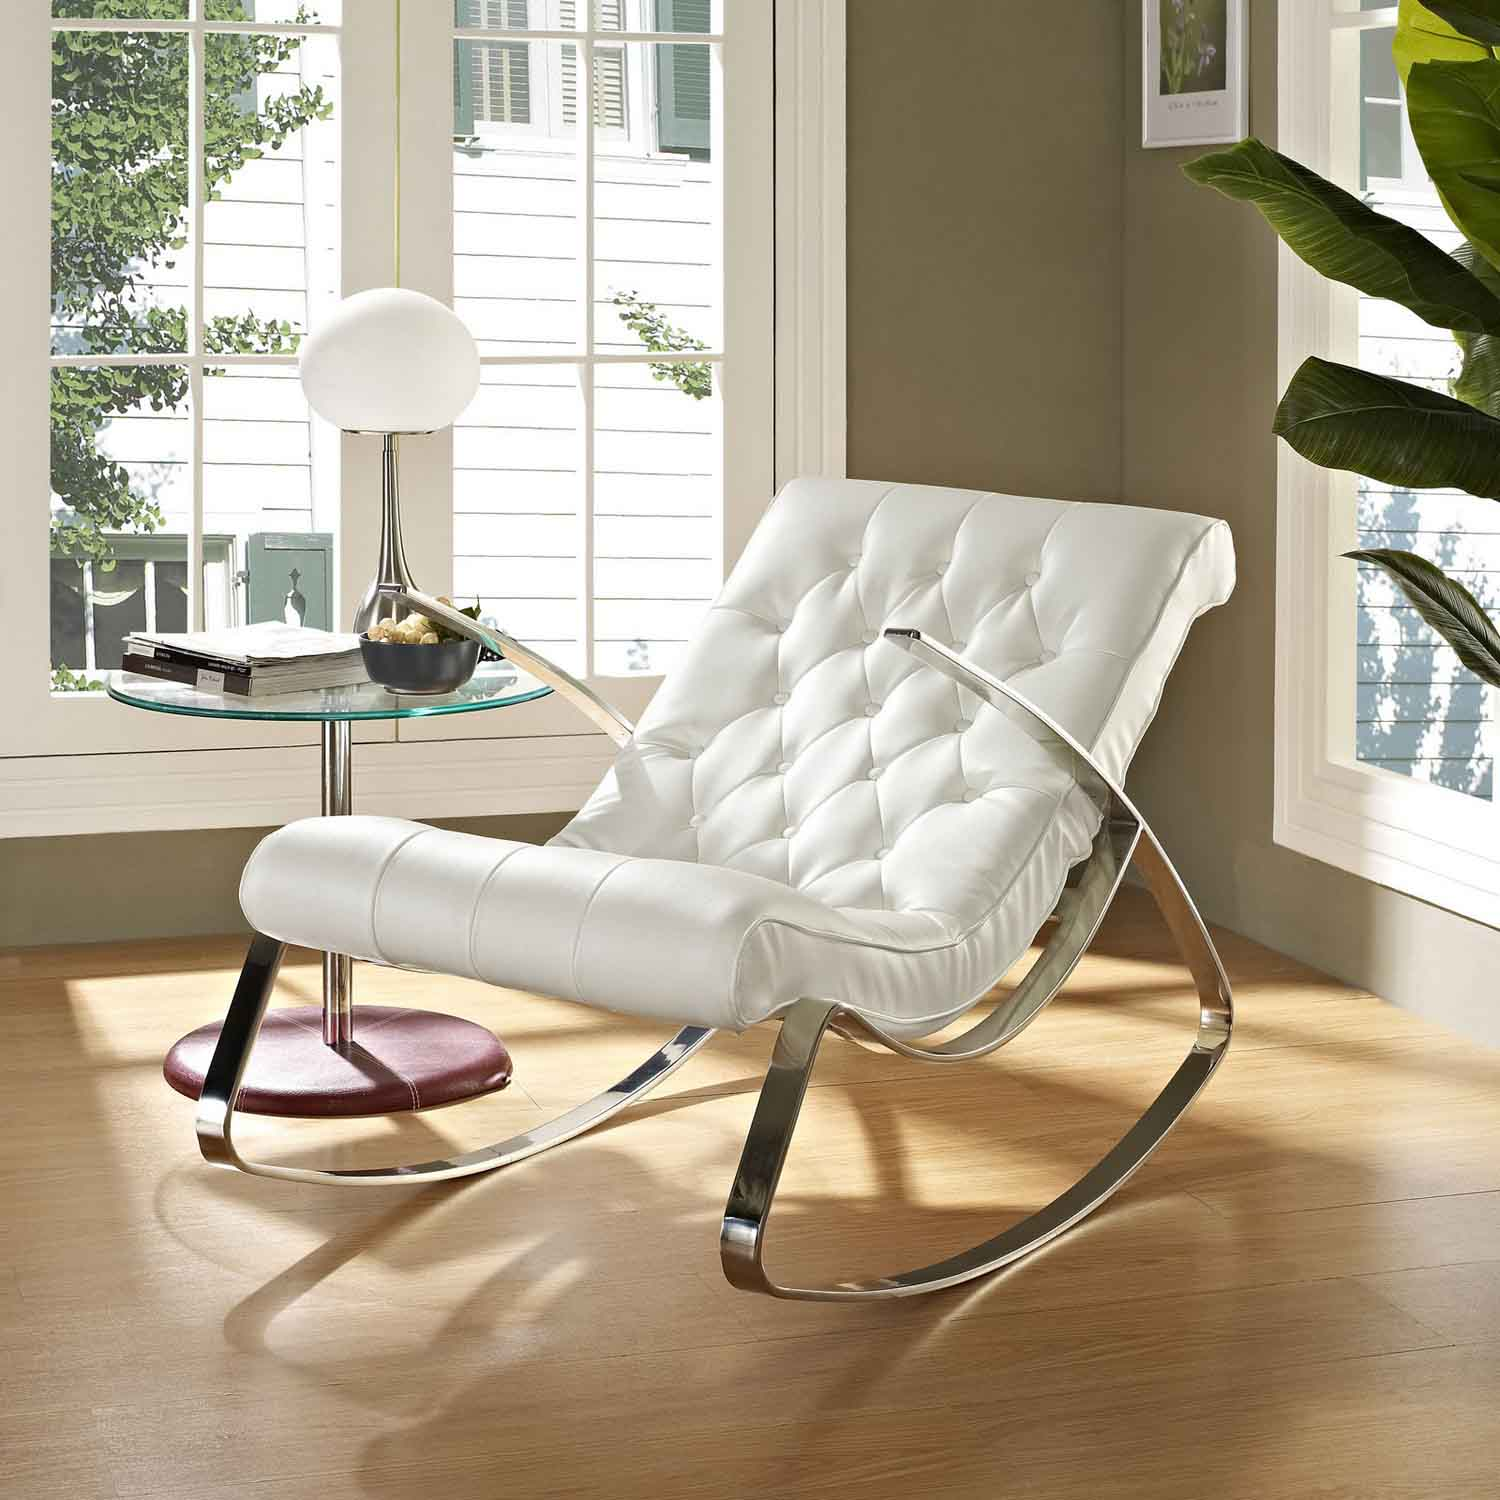 Modway Canoe Rocking Chair - White